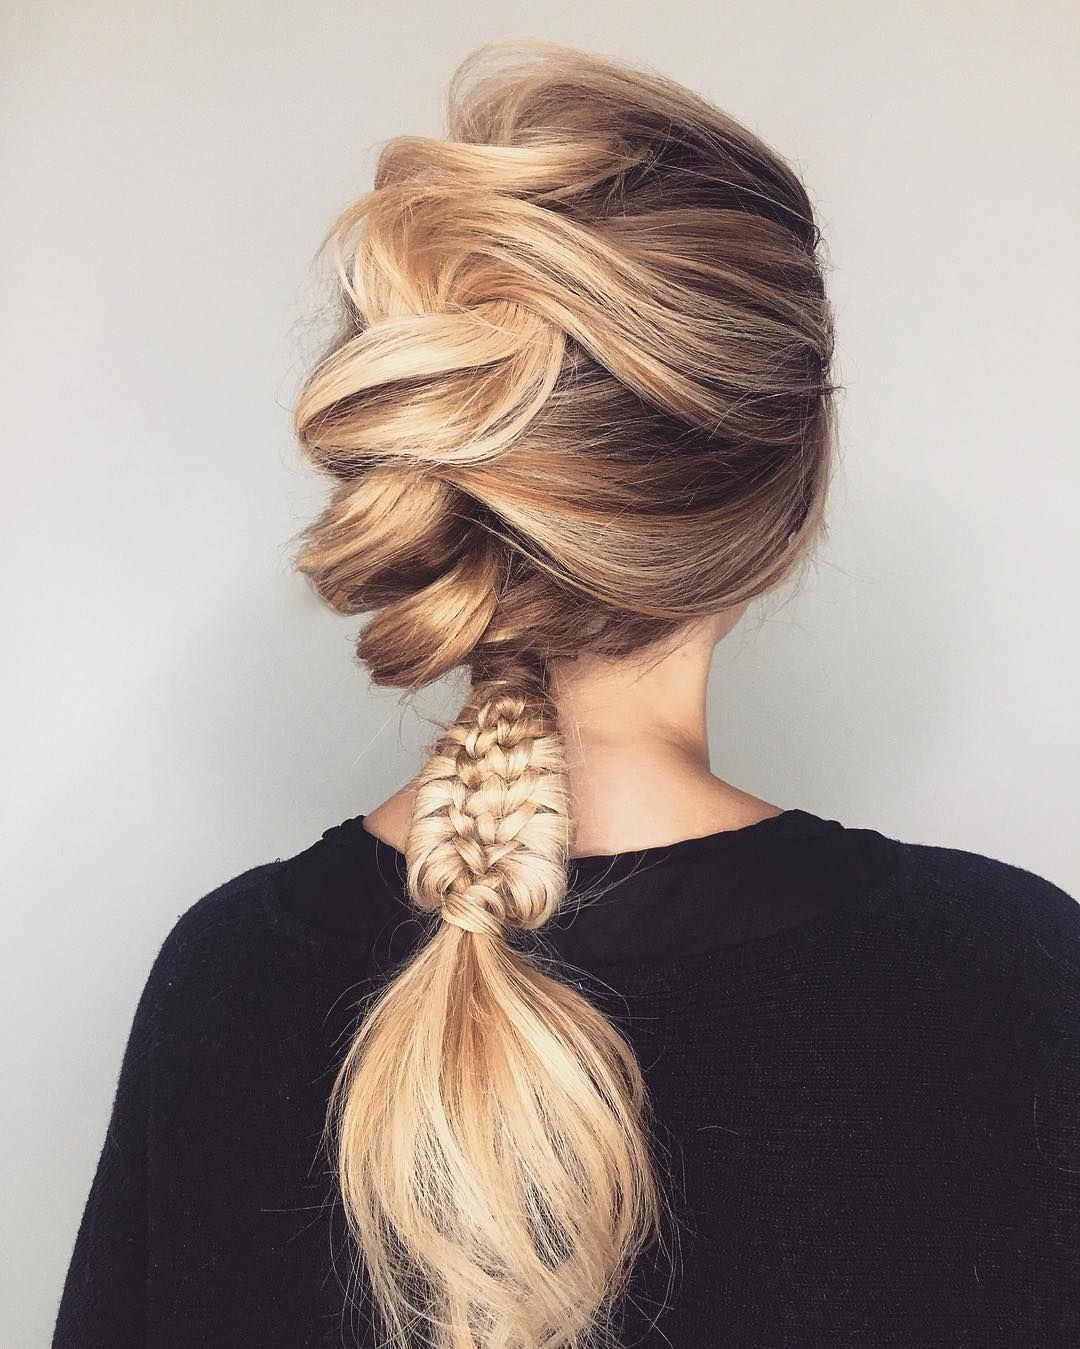 So much love for Wella Passionista Michael Grey's festival hair style. We're obsessed with this loose and lattice braid combination.